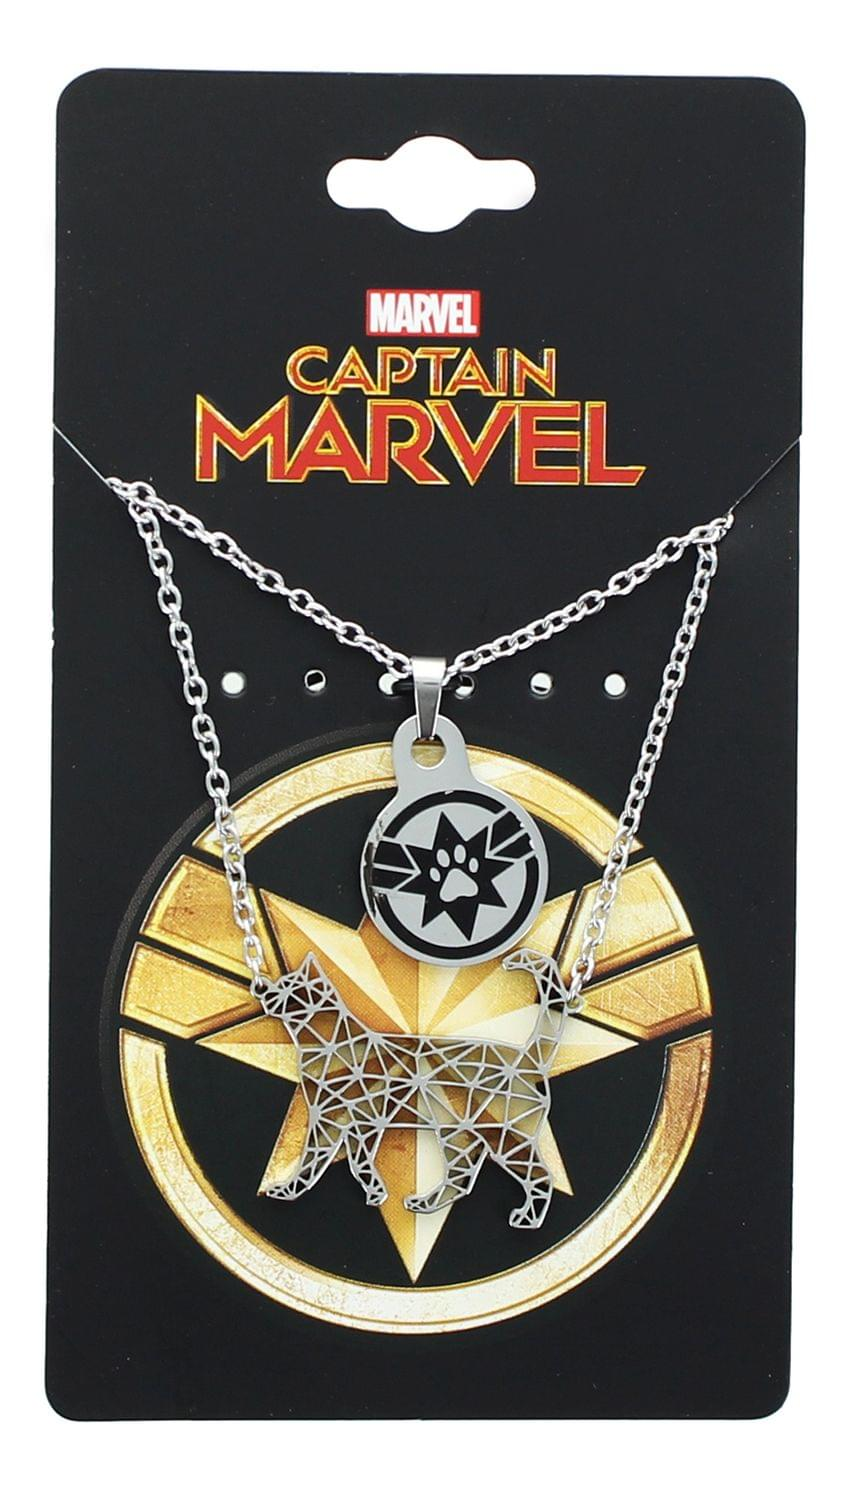 Marvel Captain Marvel Goose Silver 2 Tiered Pendant Necklace